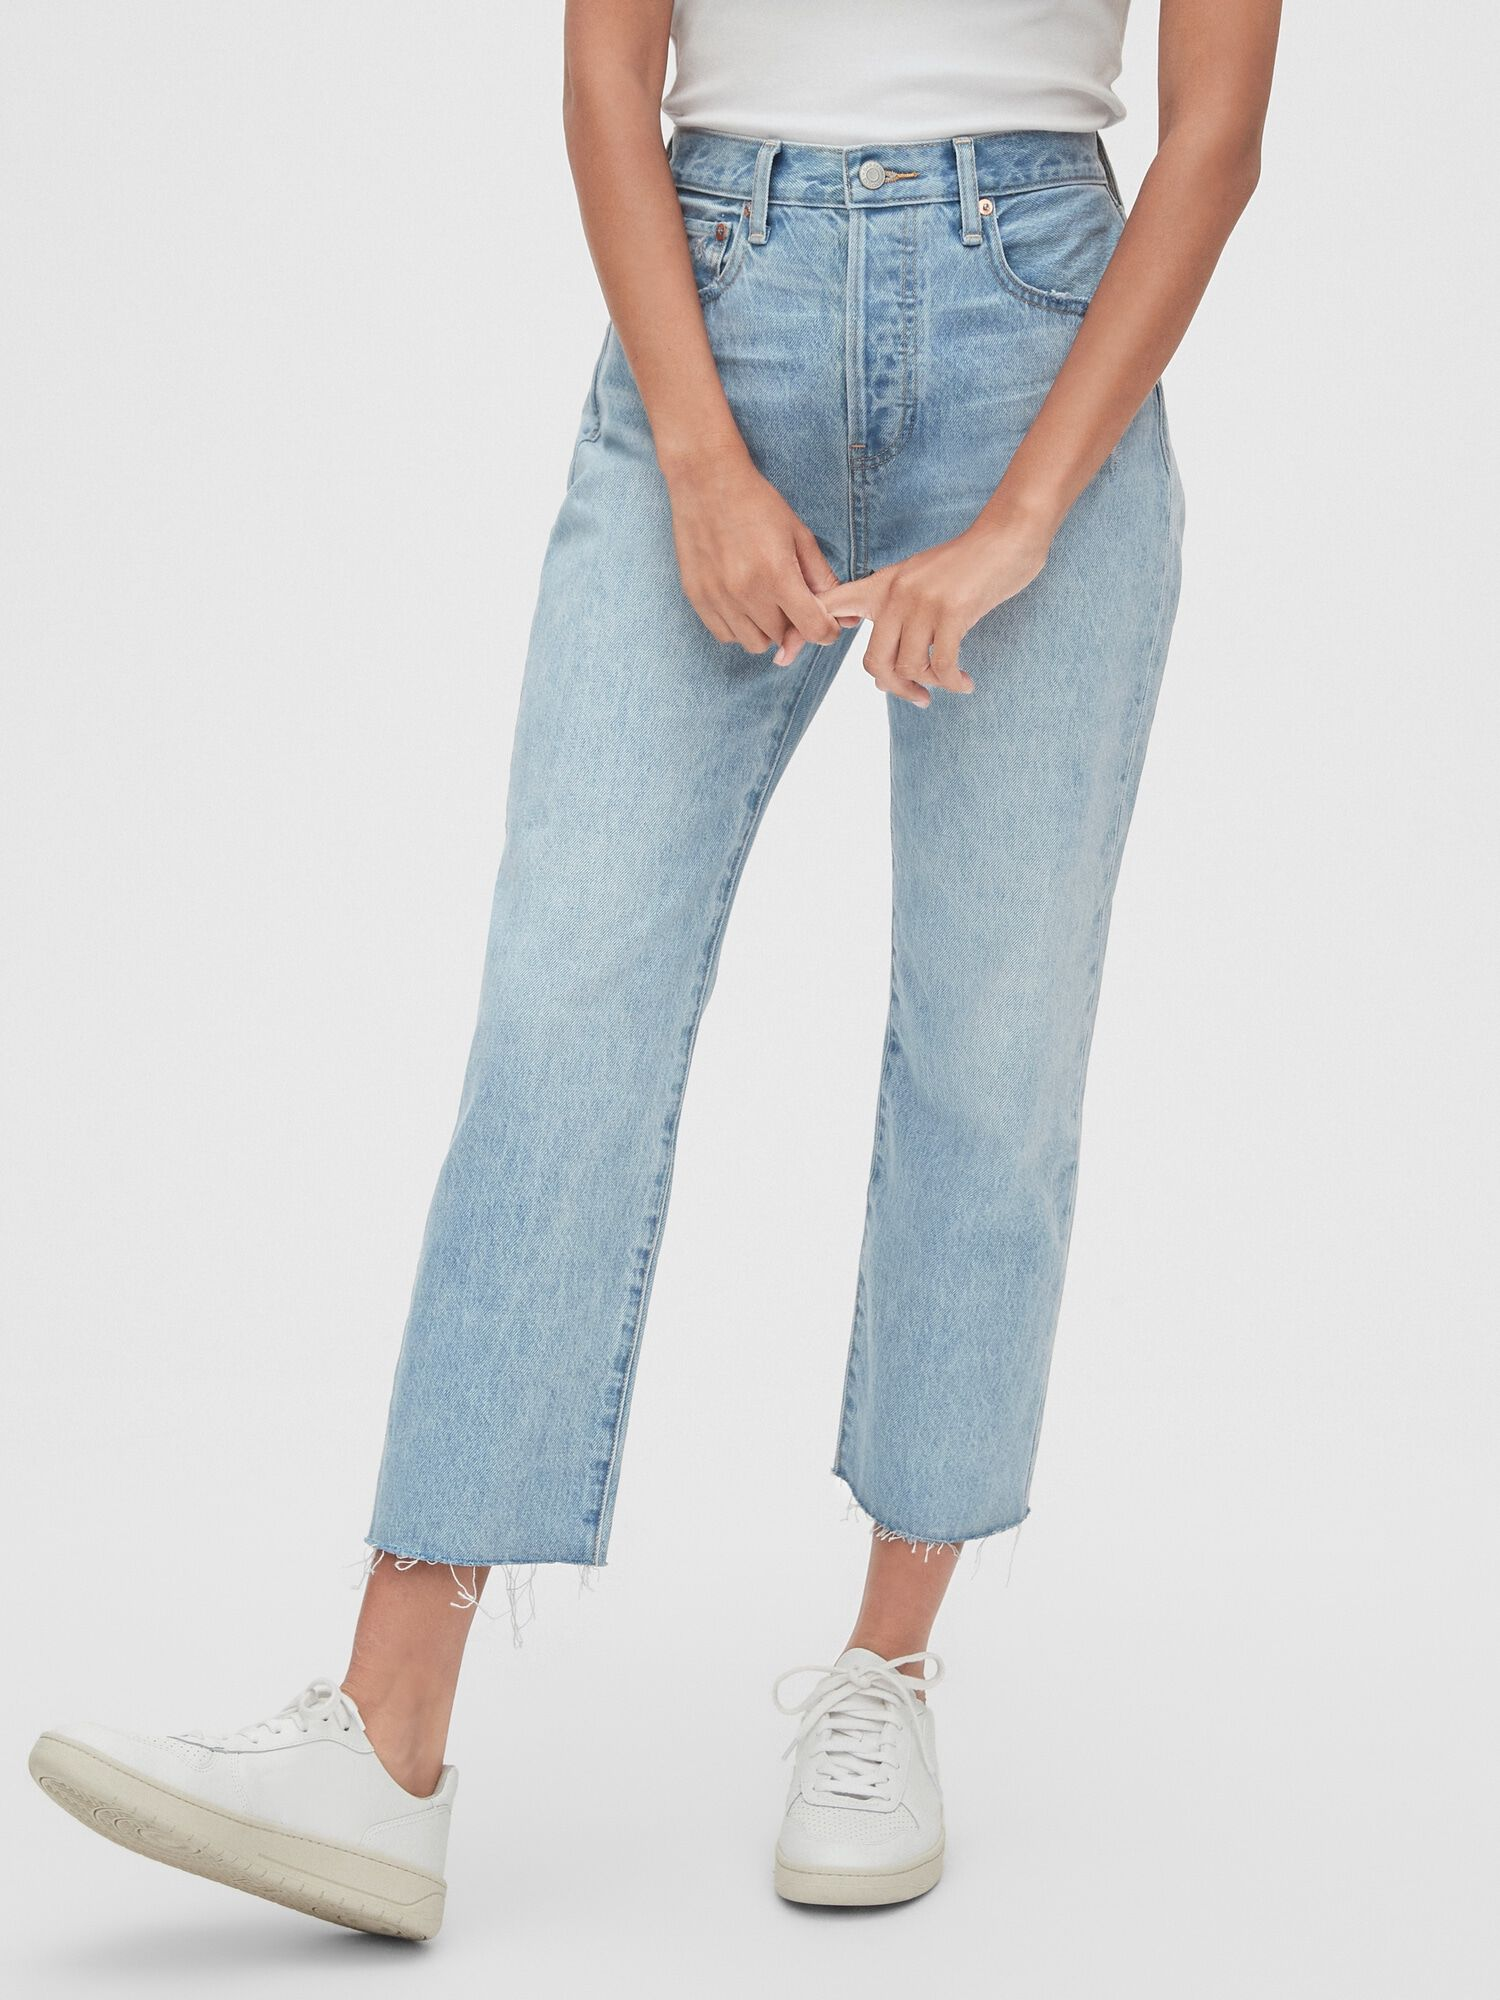 Best boyfriend jeans gap